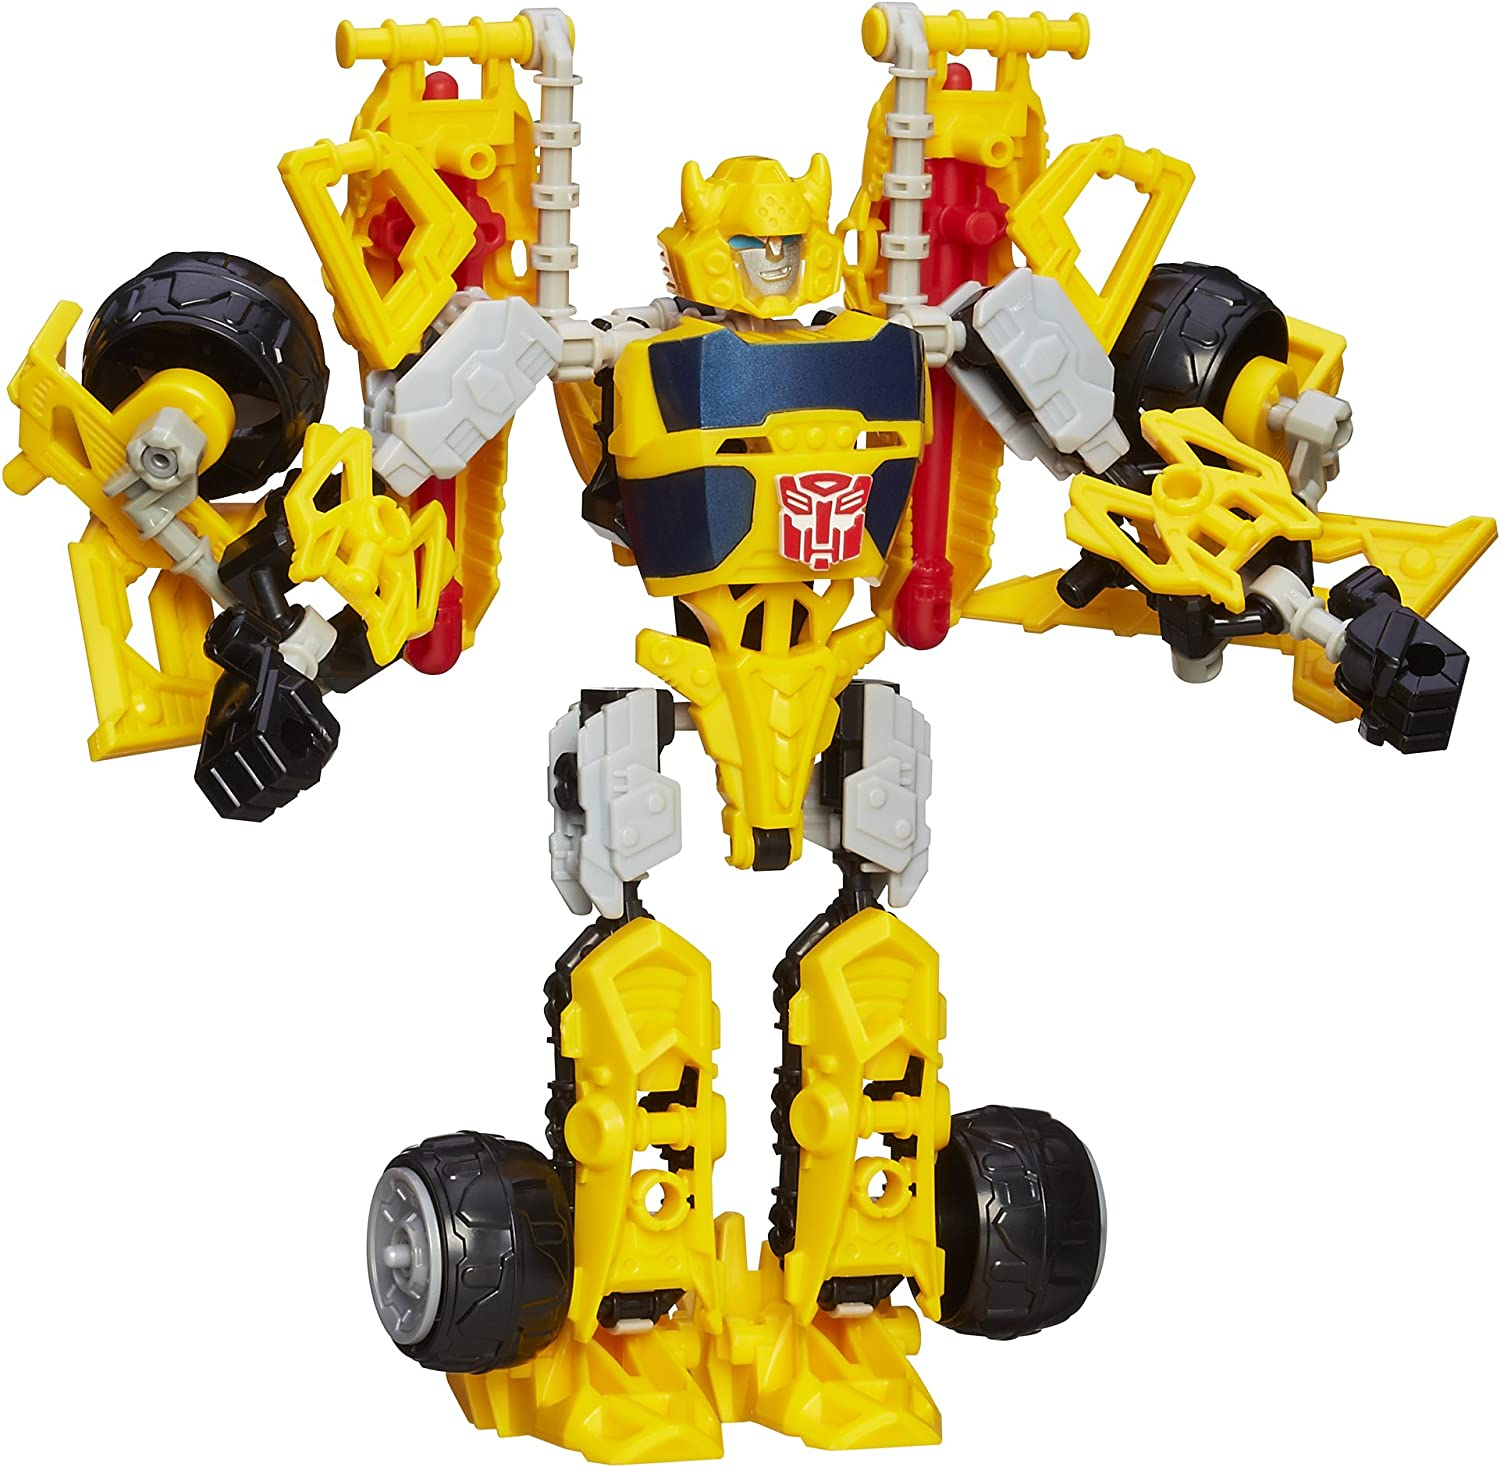 Kid Pop Transformer Figures Toy Optimus Prime Ironhide Bumble Bee Robots Gifts